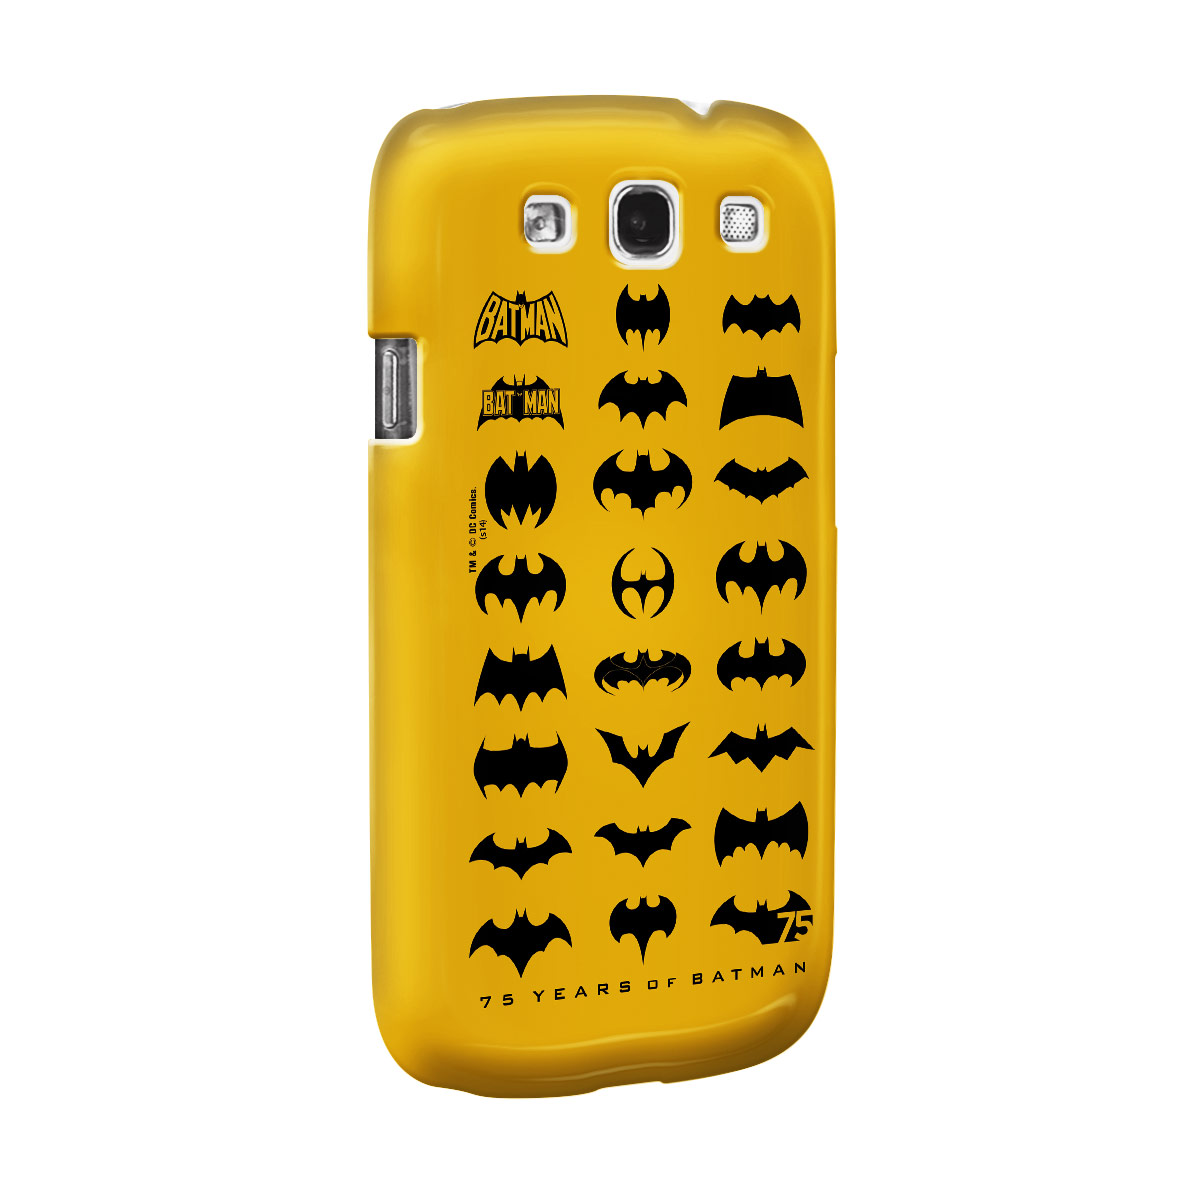 Capa de Celular Samsung S3 Batman 75 Anos Logos Collection